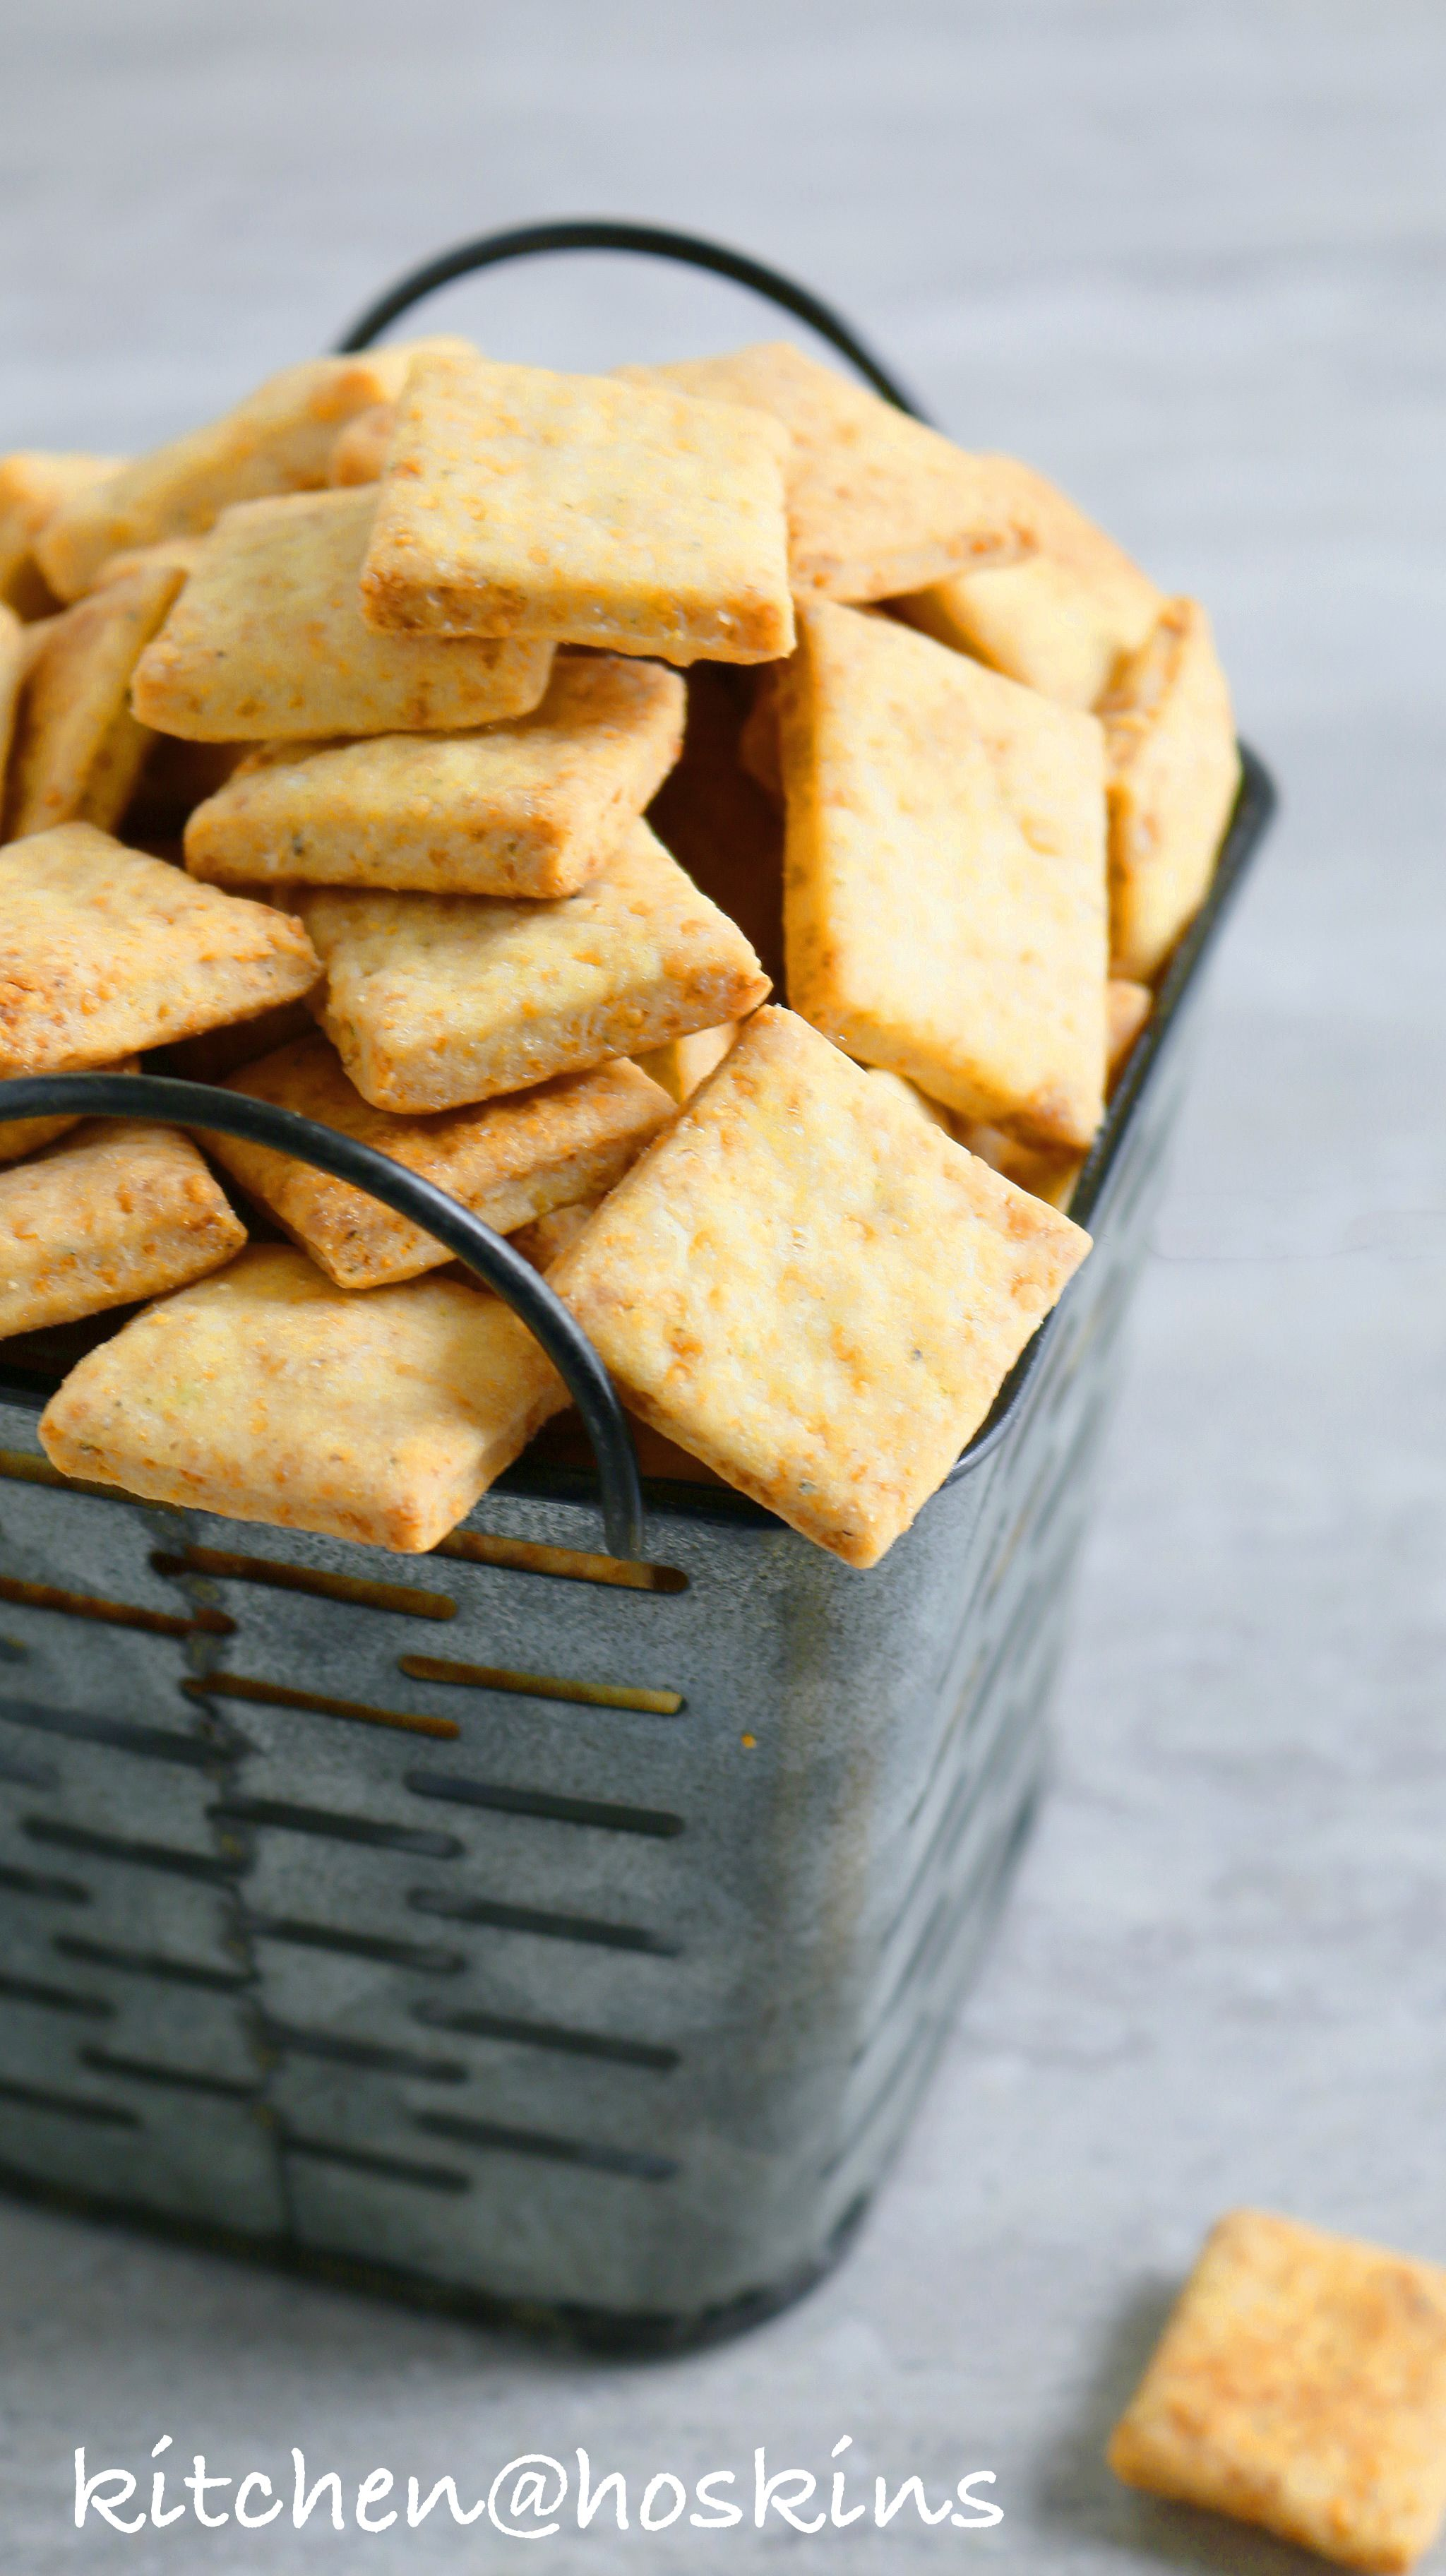 Homemade Parmesan Cheese Crackers Kitchen Hoskins Recipe Cracker Recipes Homemade Crackers Homemade Cheese Crackers